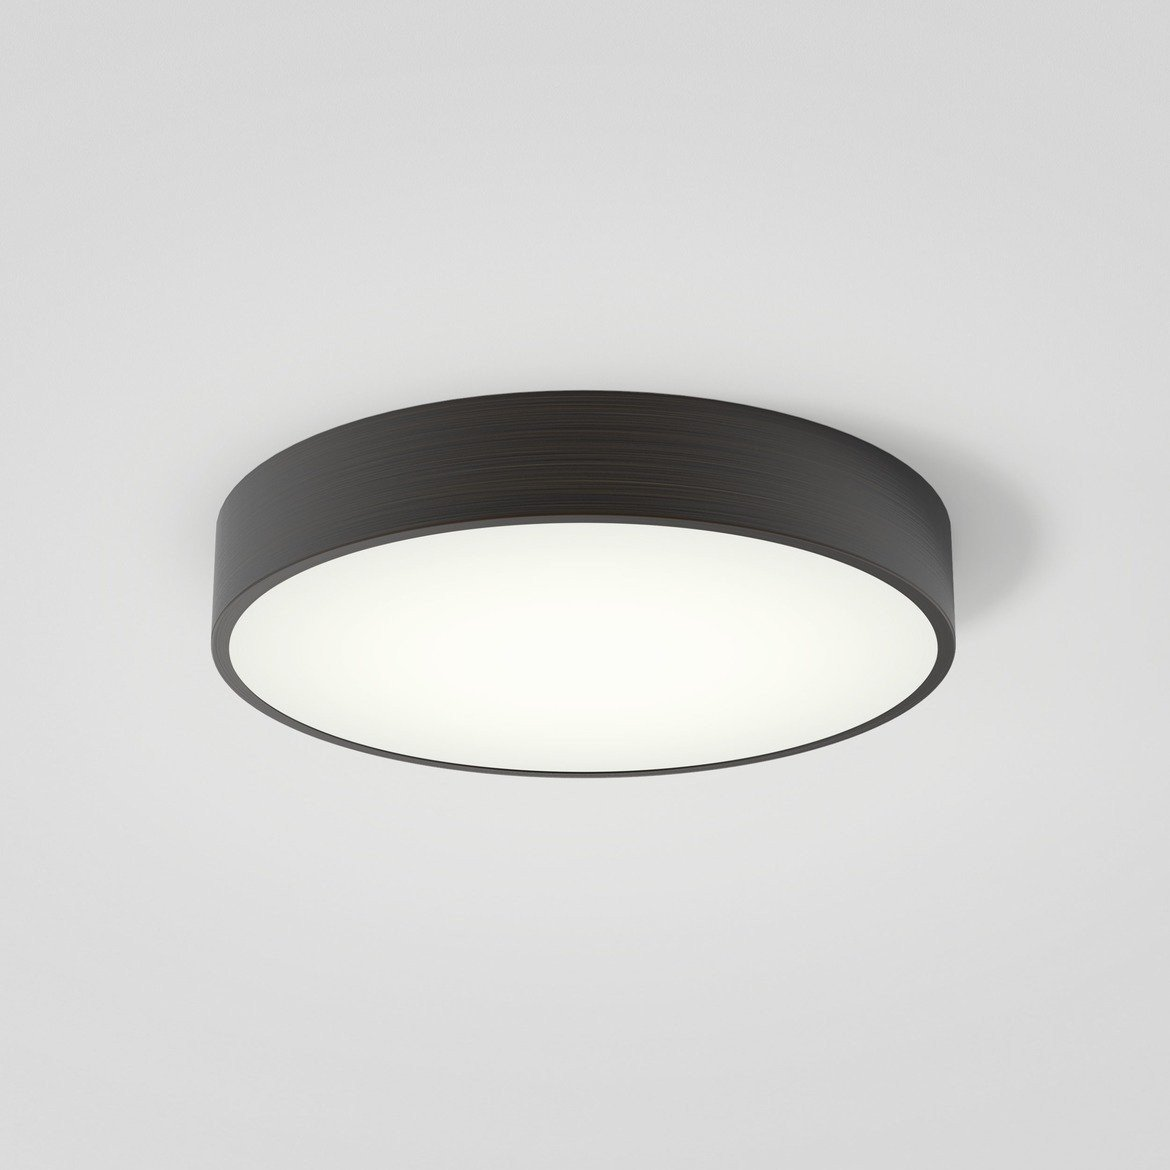 Bronze 16w Led Round Bathroom Ceiling Light